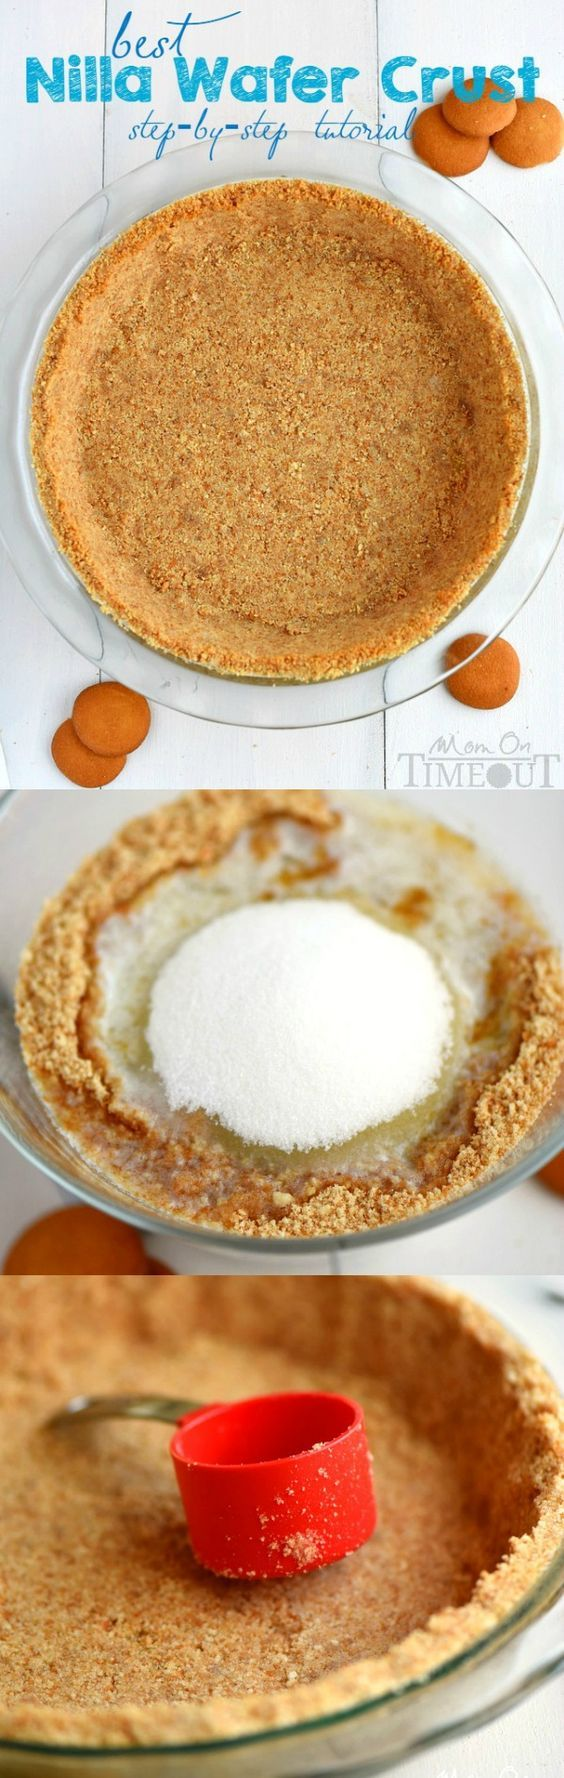 A step by step tutorial to your new favorite pie crust recipe! This is the BEST Nilla Wafer Pie Crust ever and so easy too!   MomOnTmeout.com